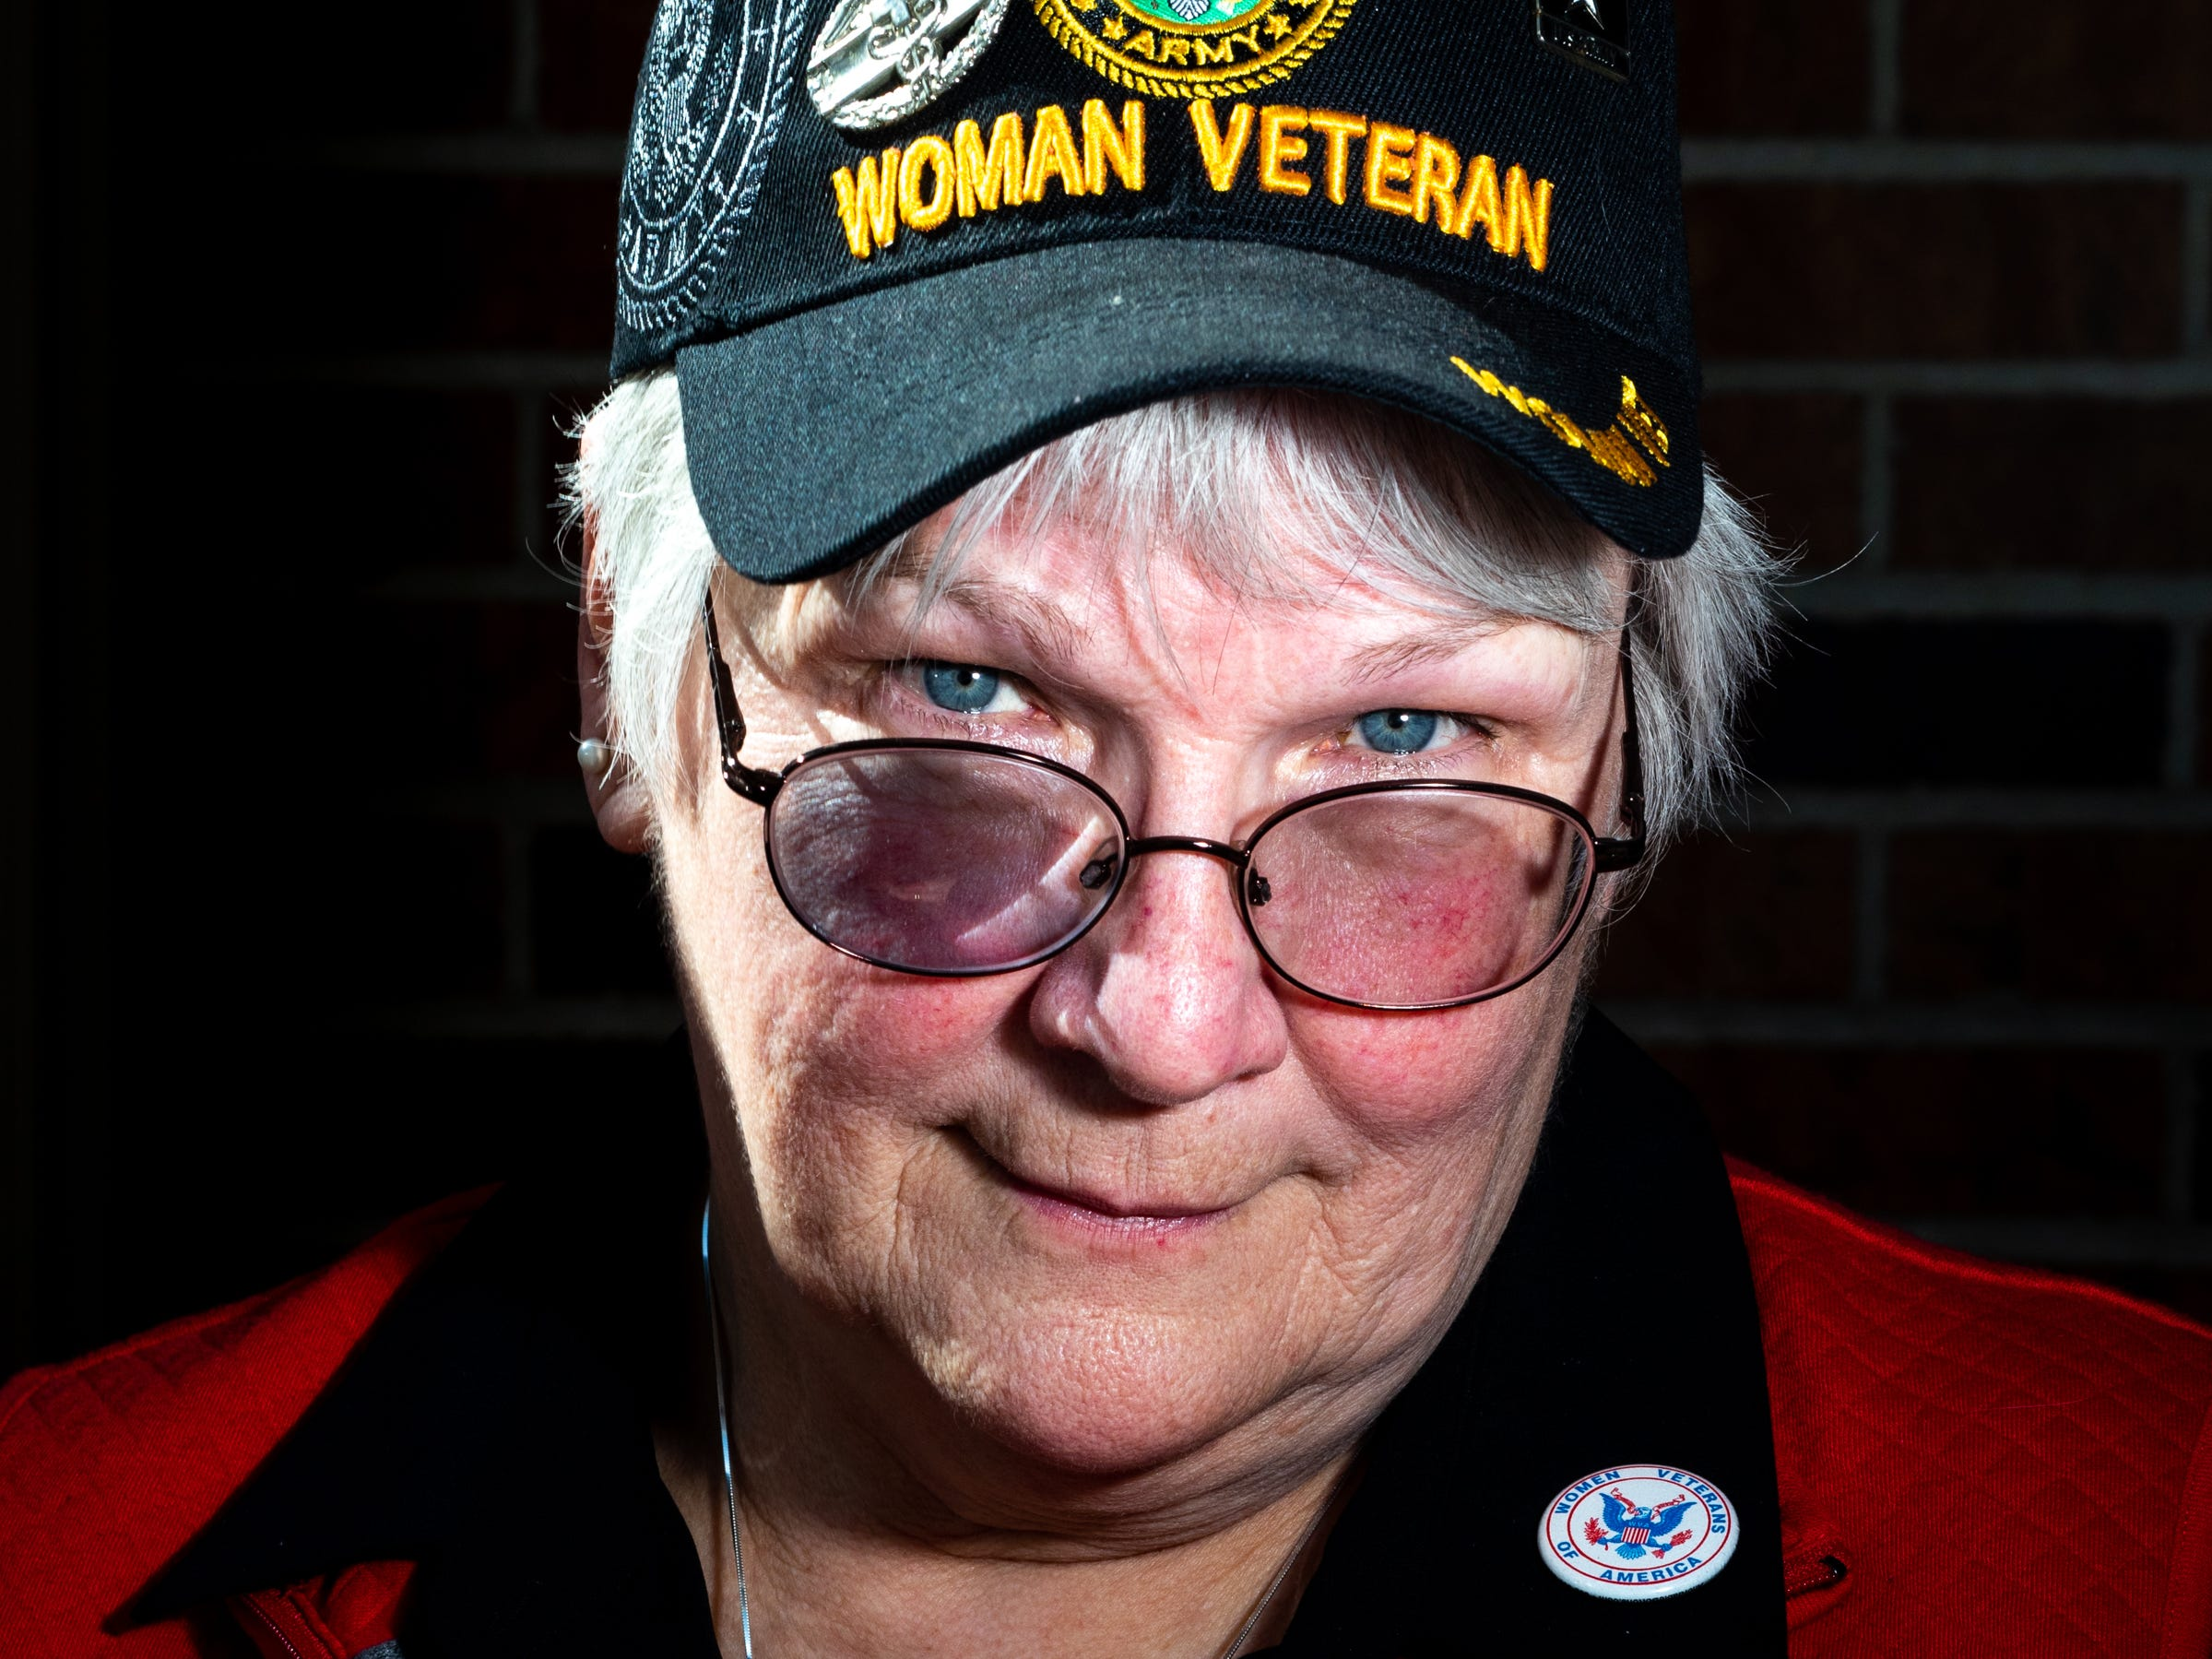 Mary Ross, 62, Clarksville. Years: 1974-1995 Rank: Sergeant First Class in the U.S. Army Deployed to: Gulf War